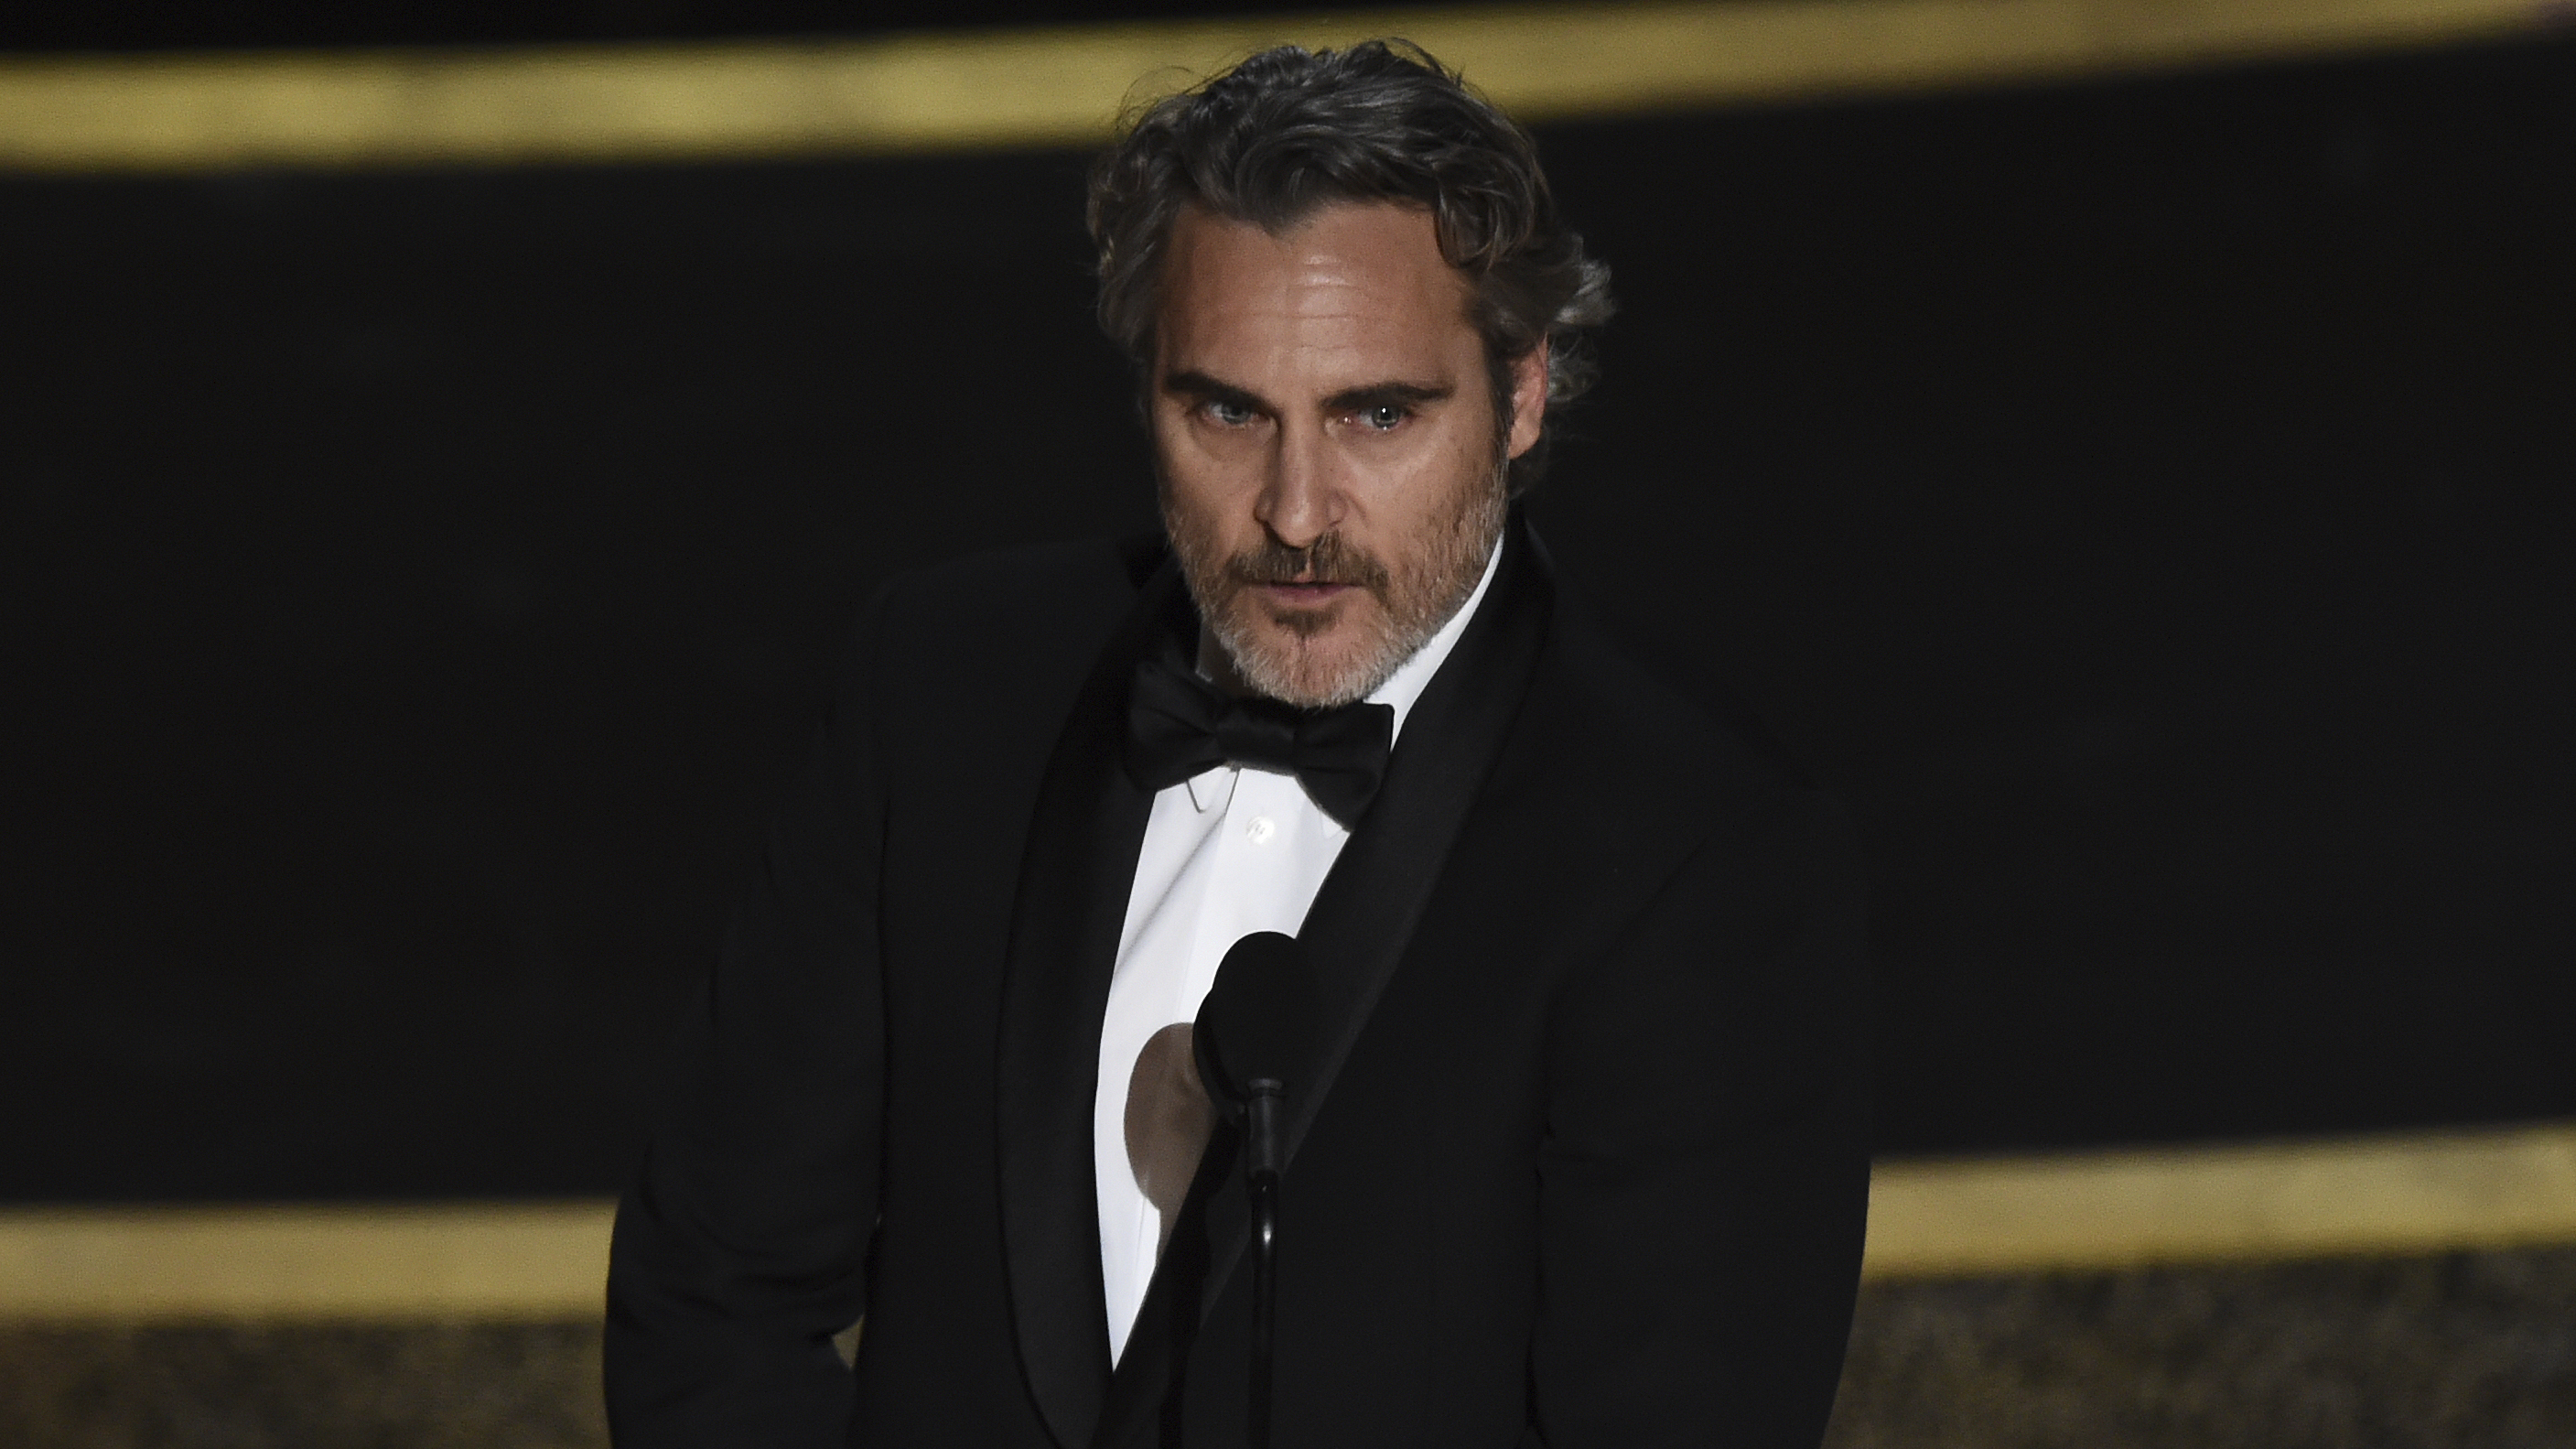 Oscars 2020 Joaquin Phoenix wins best actor for role in Joker 2815x1583